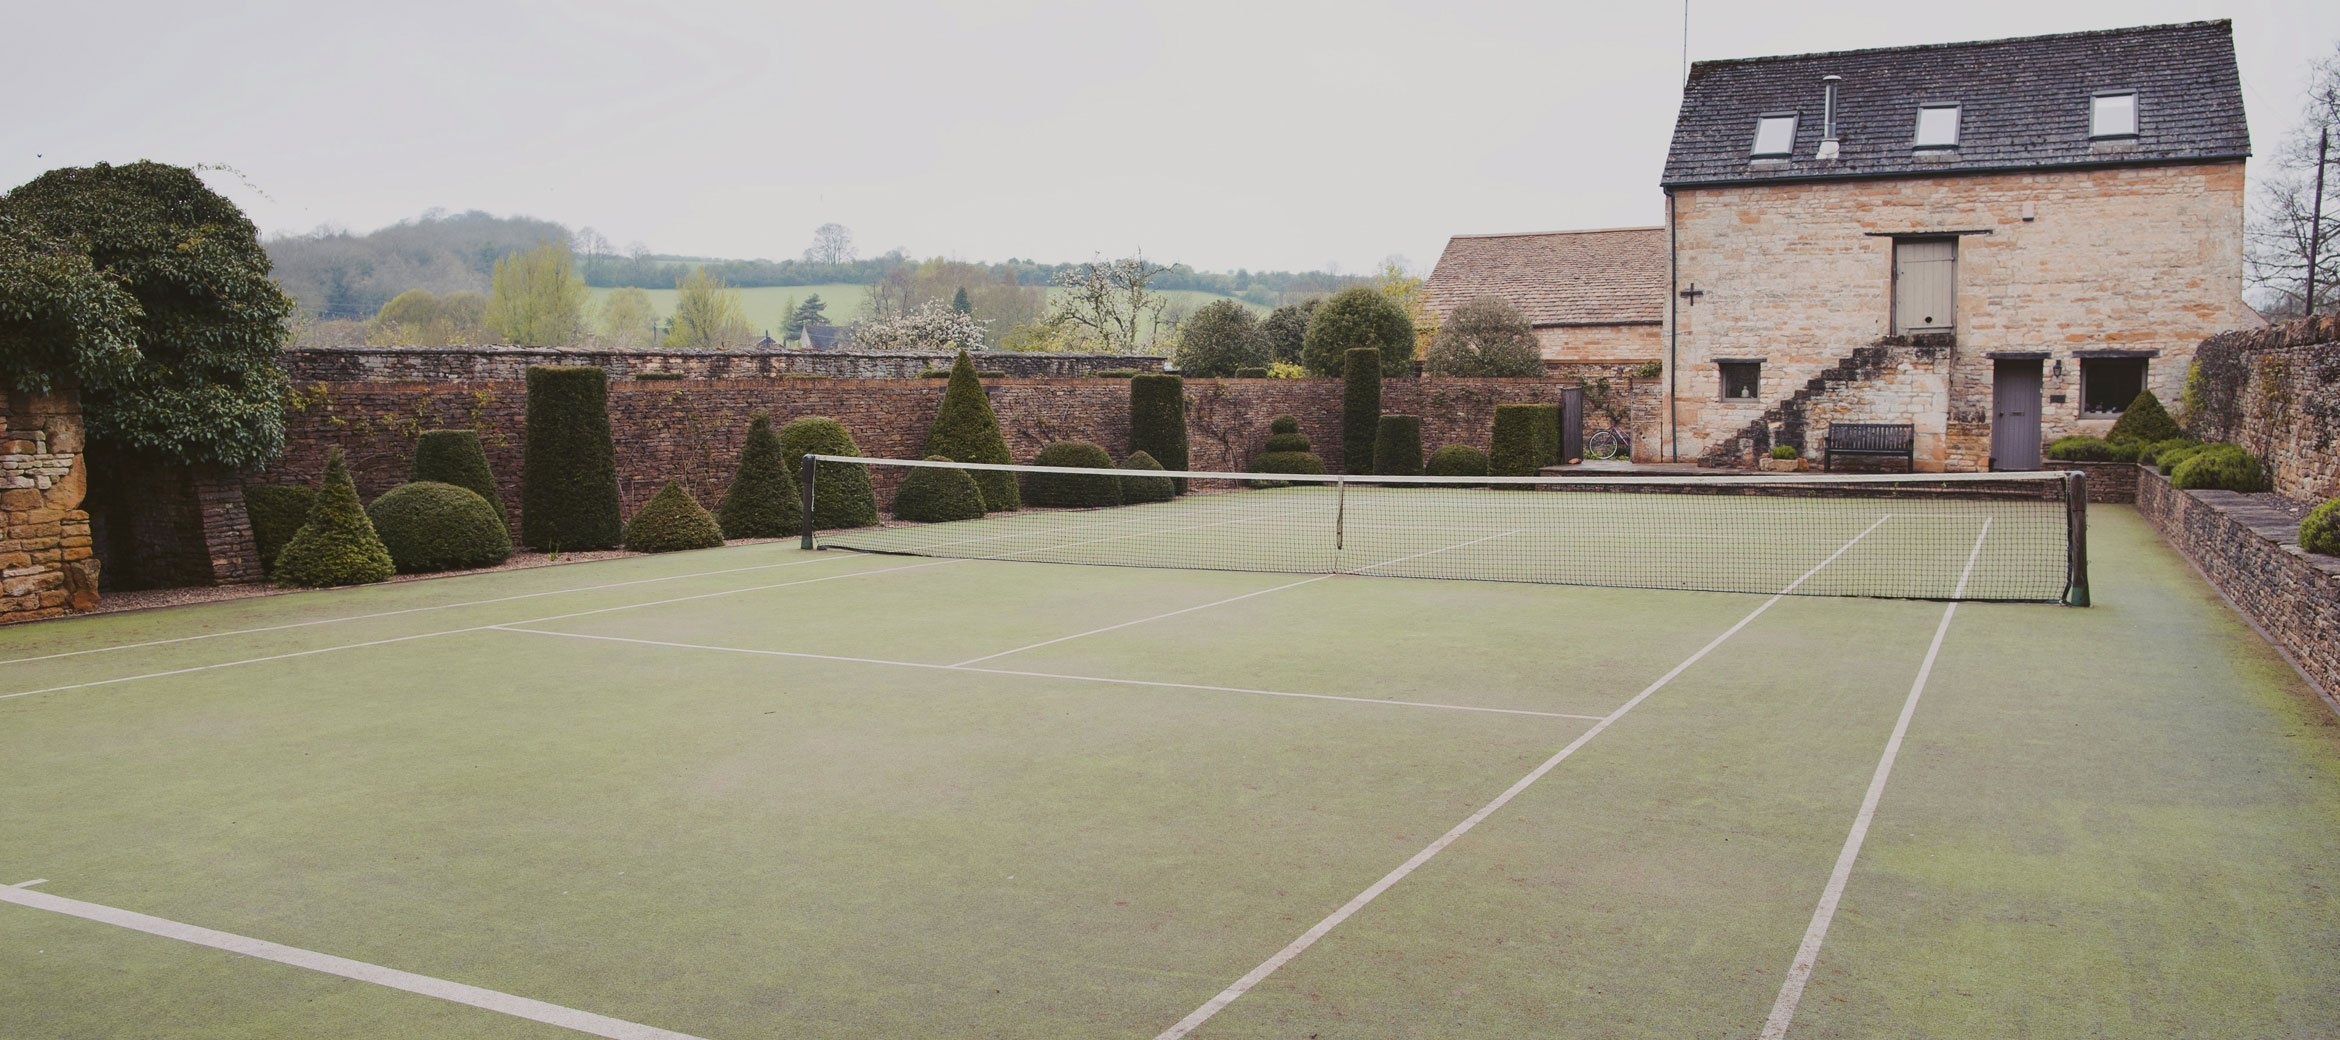 Temple-Guiting-Manor-Tennis-Court